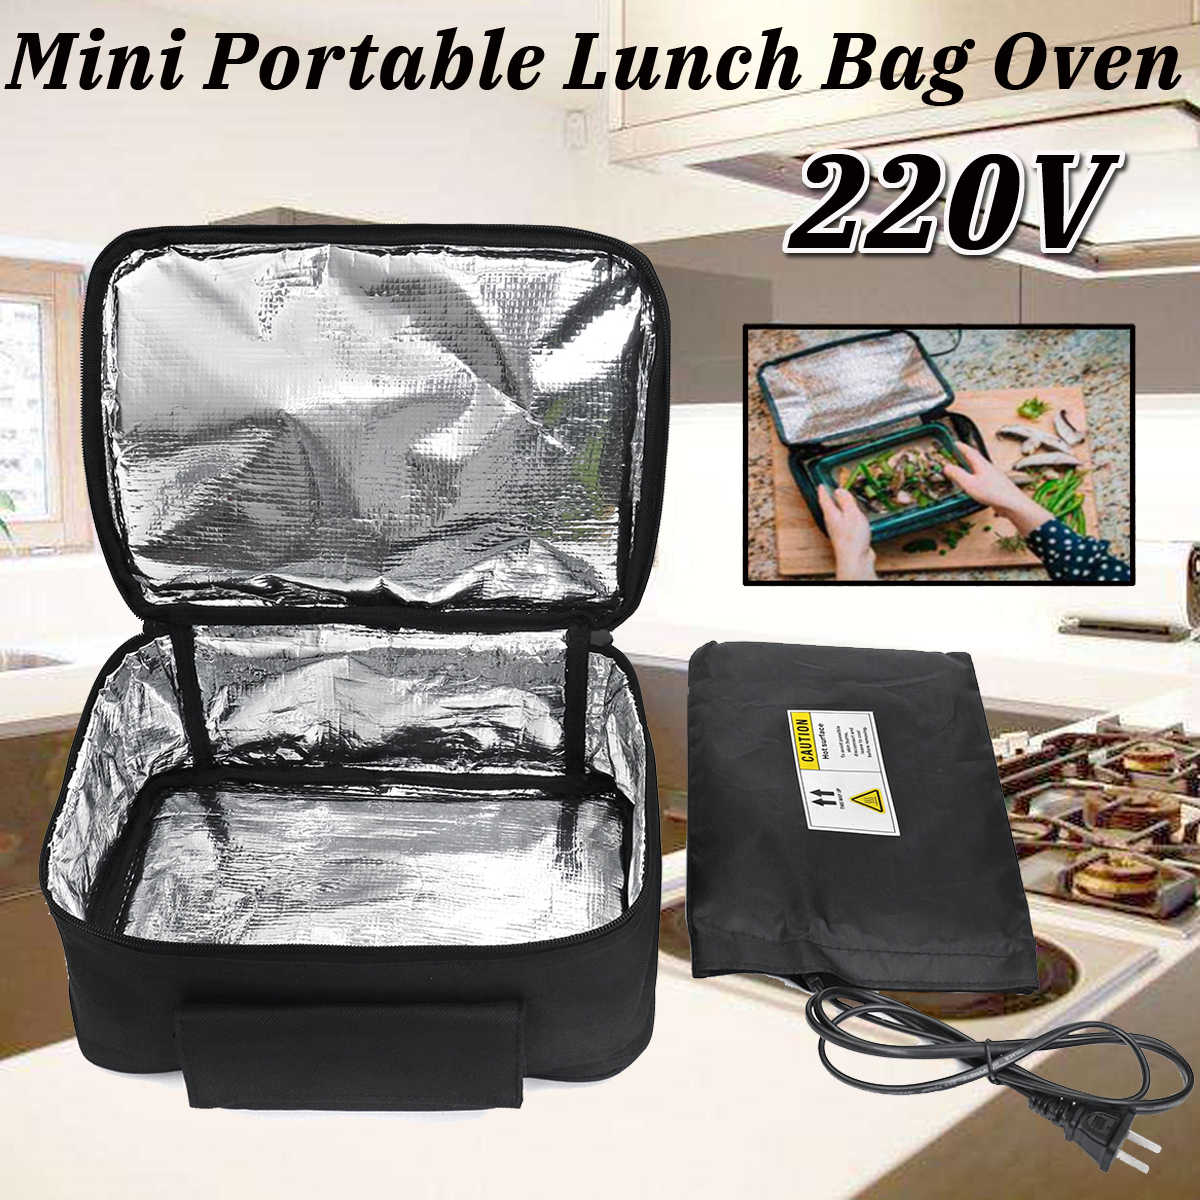 New 220V/110V Portable Mini Personal Lunch Oven Bag Instant Food Heater Warmer Electric Oven PE Alloy Heating Lunch Box Office